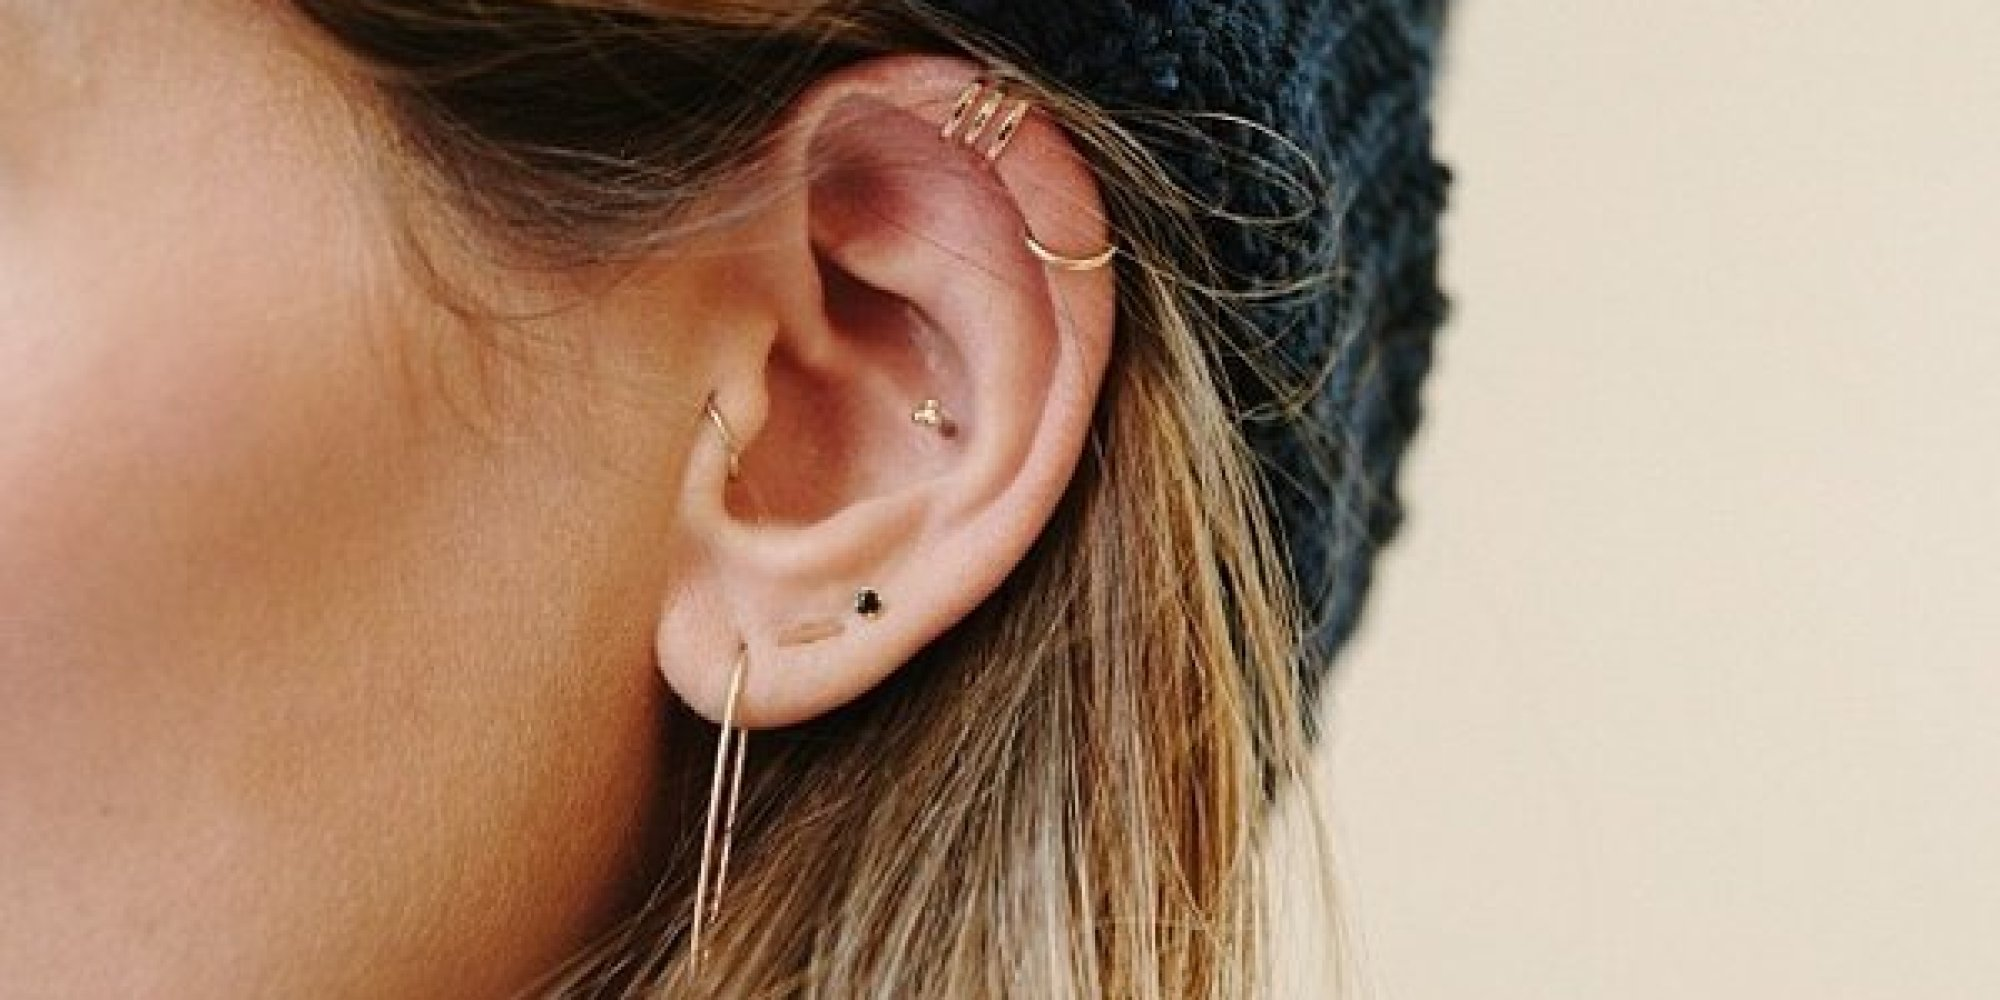 Thinking About Getting Another Ear Piercing? You Should Read This First   Huffpost